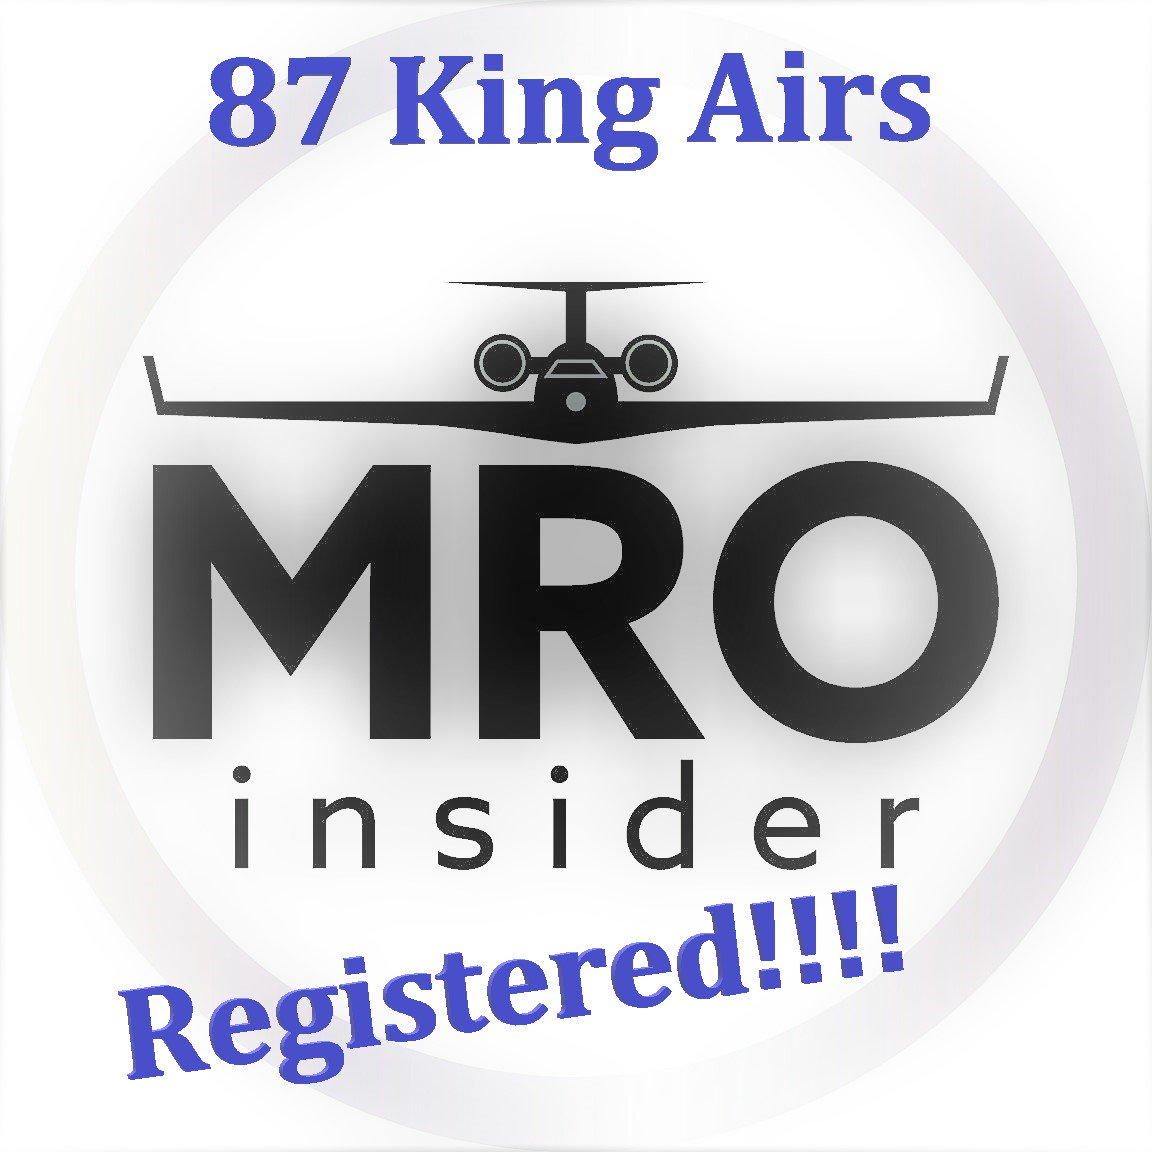 We have 87 King Airs Registered on our site!!! #Kingairs #beechcraft #aircraftmaintenance #adsb #registertoday #wearereadytohelp #aviation #aviationlife #RFQ #mroinsider #whatareyouwaitingfor #stayahead #bizav #aircraftonground #worthit<br>http://pic.twitter.com/DZ6s1VzB57